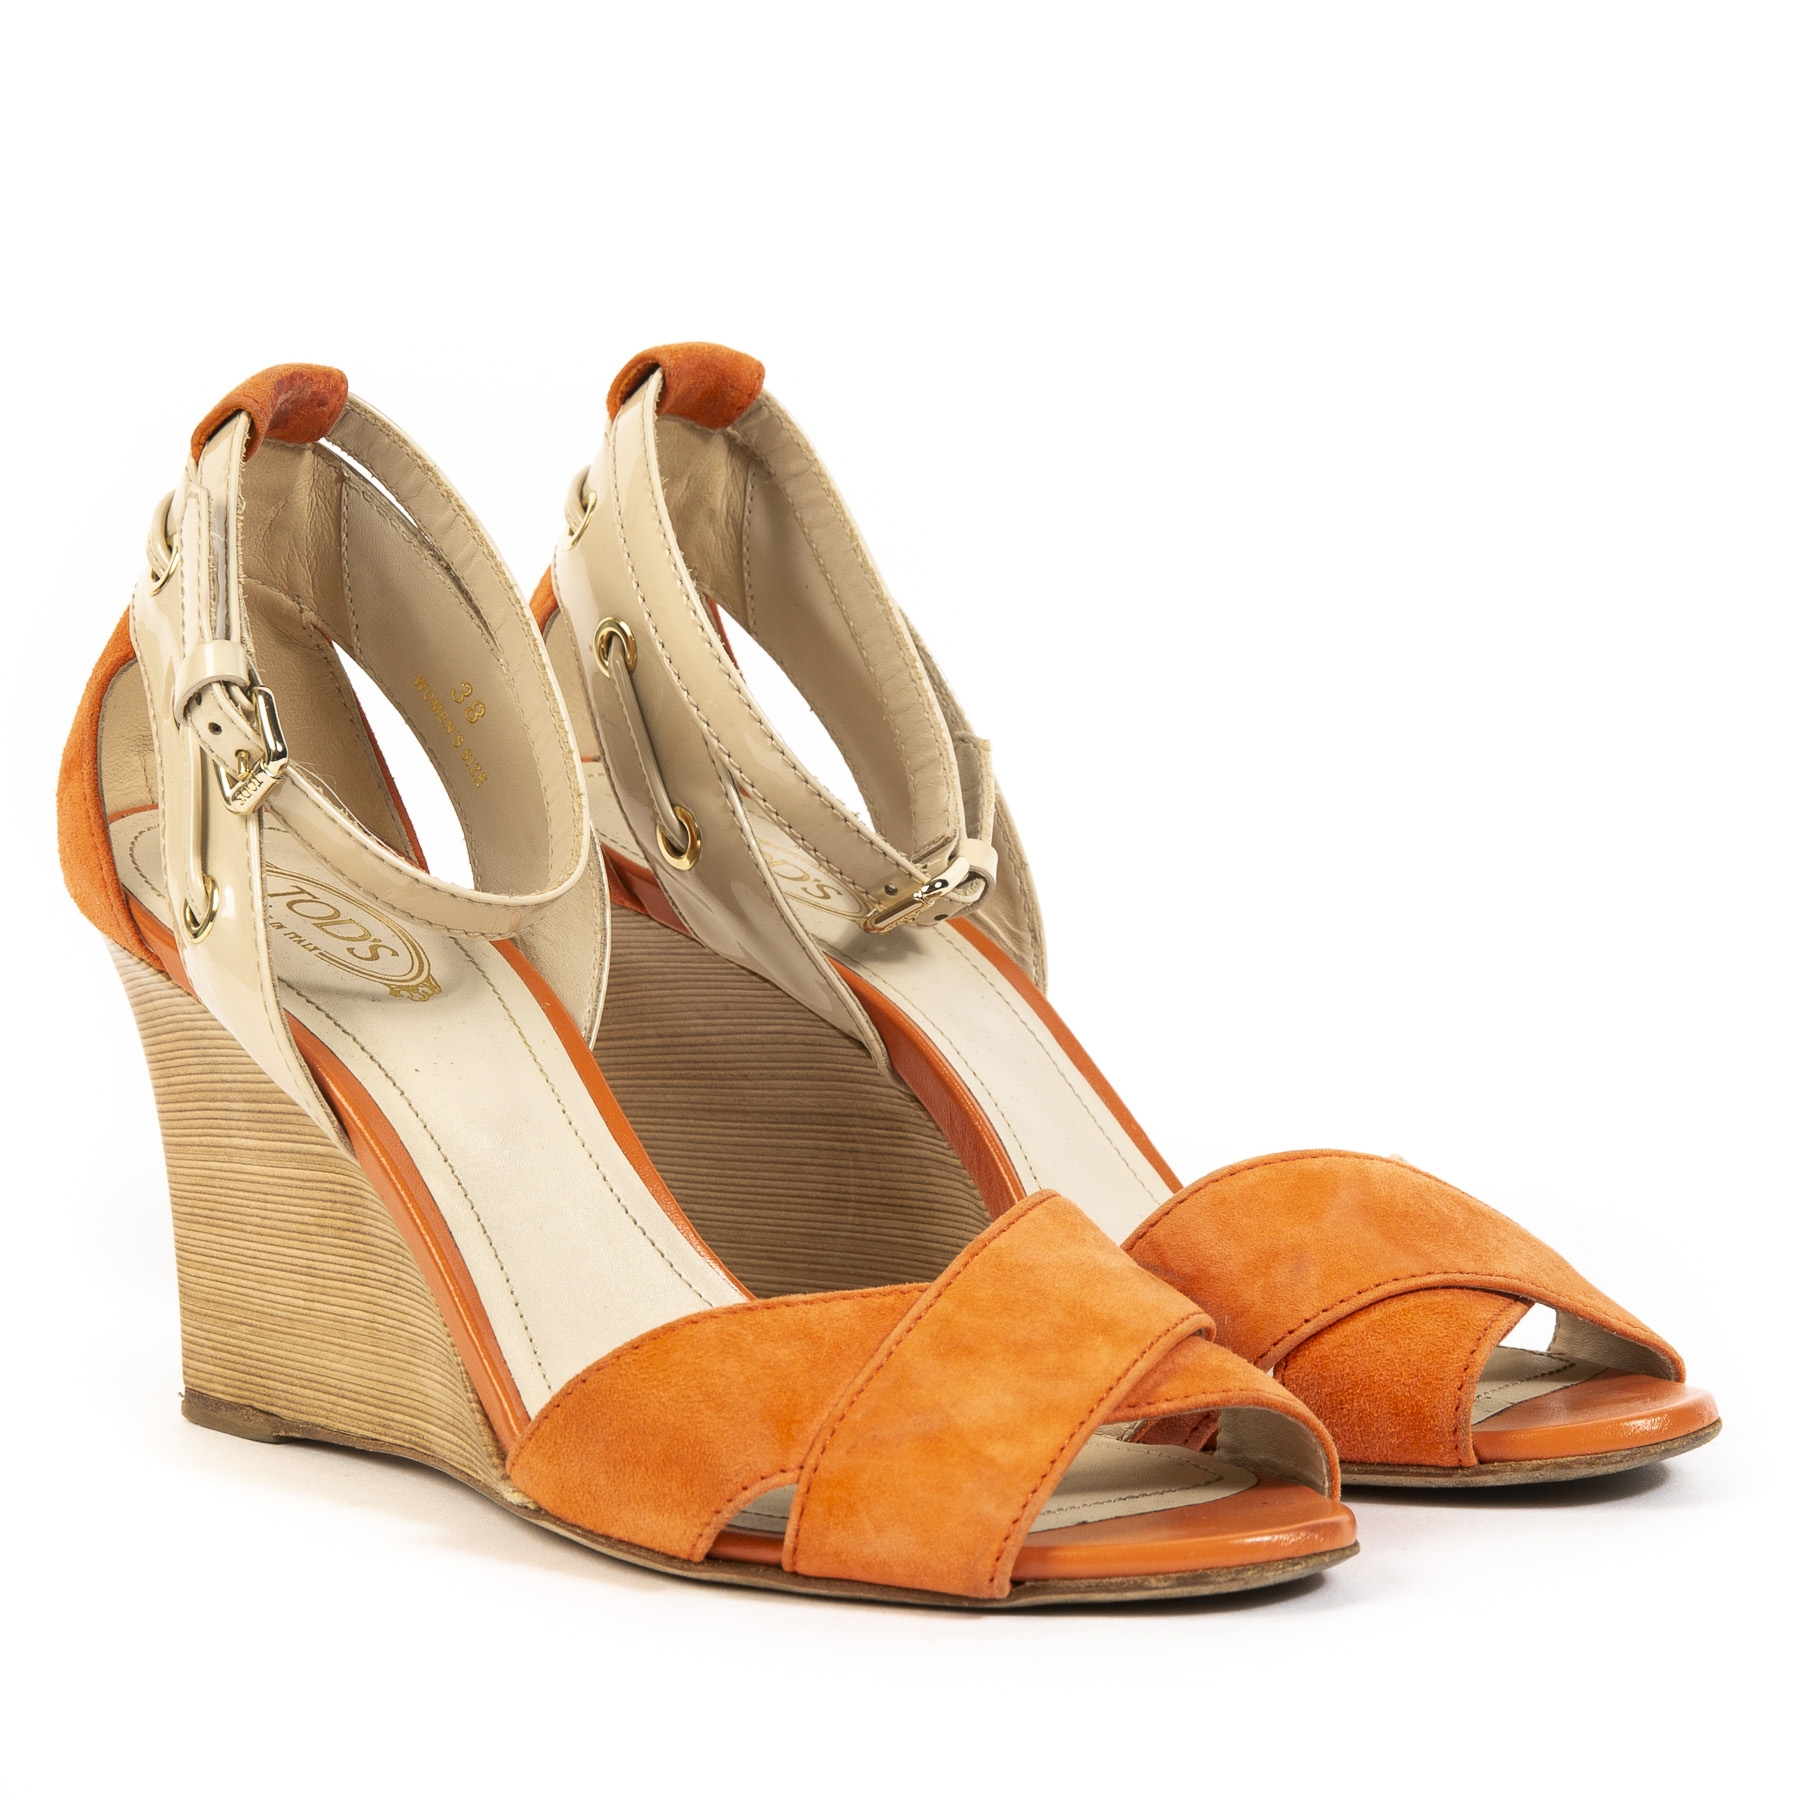 Buy authentic secondhand Tods wedges at labellov webshop antwerp.